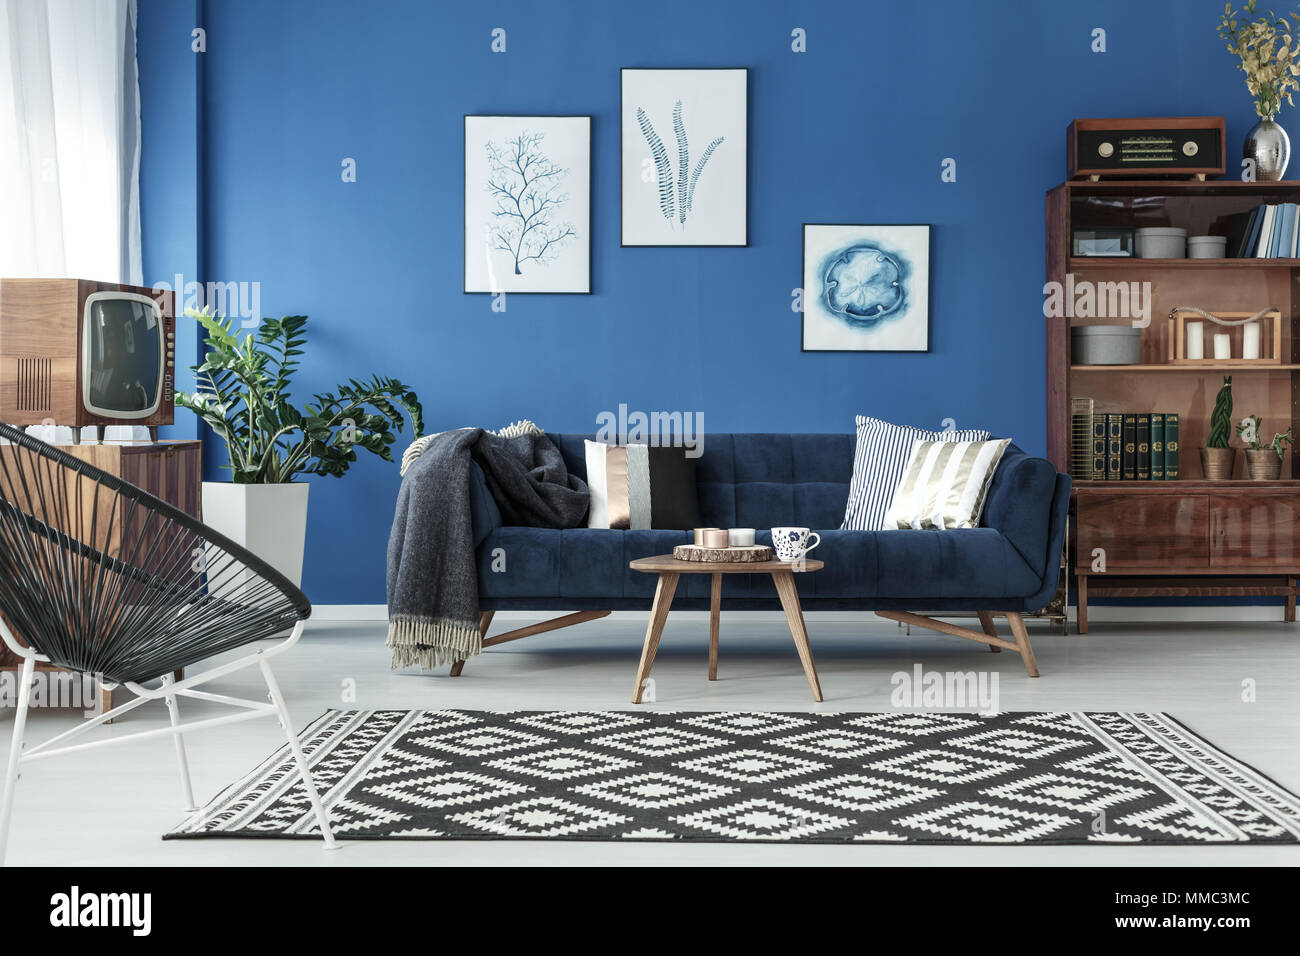 Blue up-to-date decor of lounge with blue sofa and patterned carpet - Stock Image